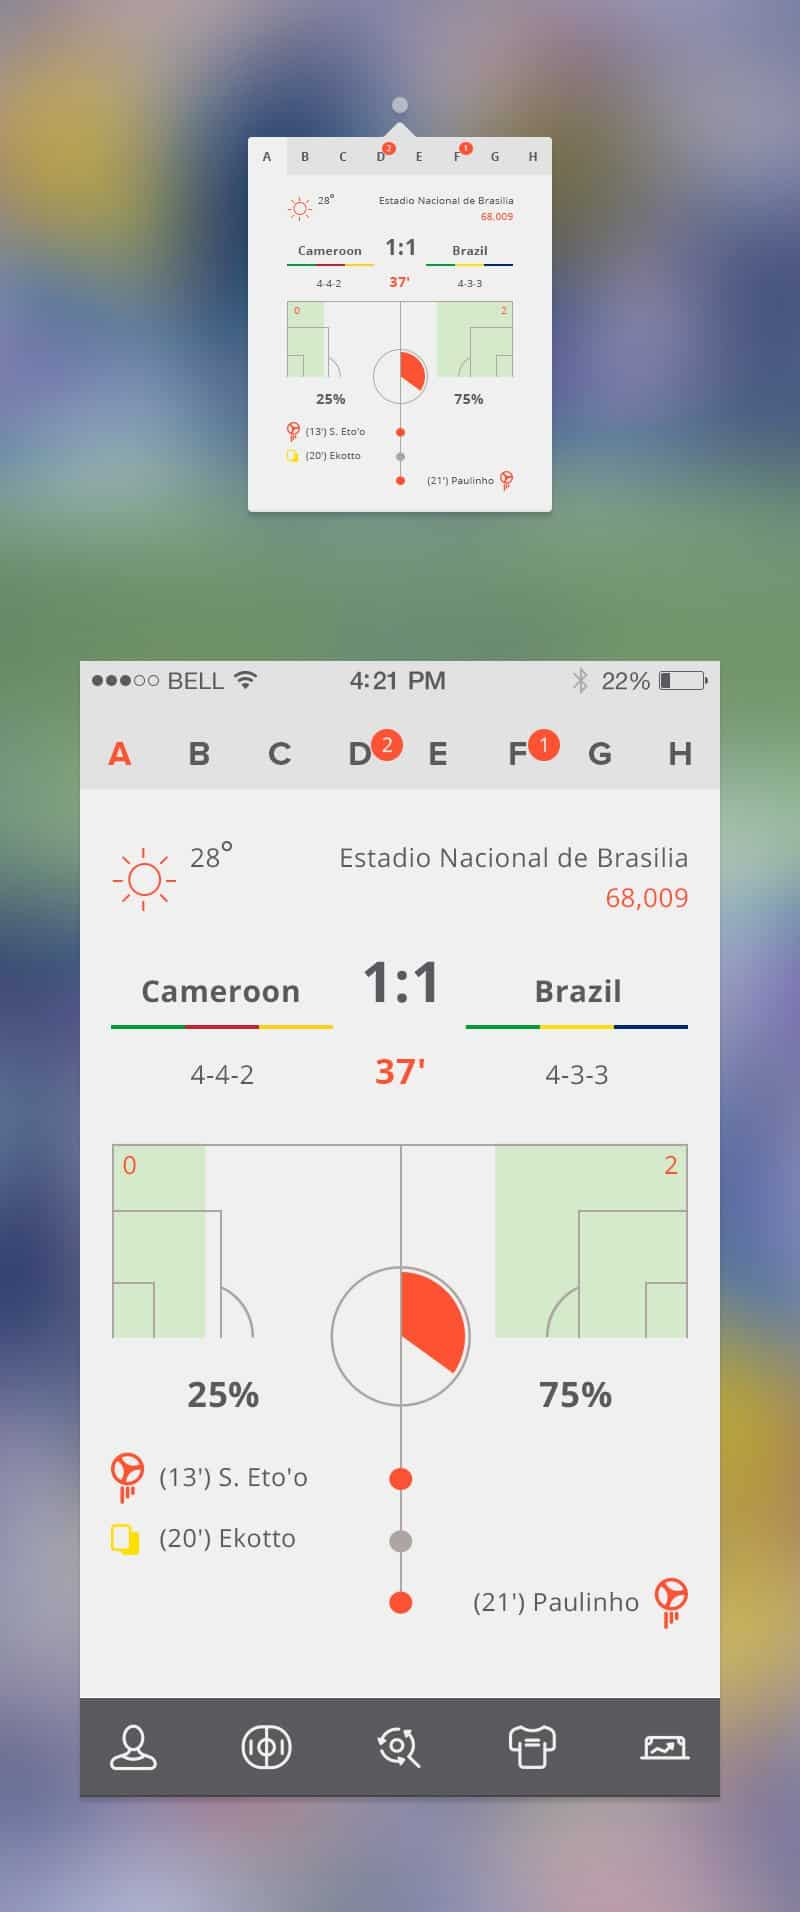 Soccer Apps Free PSD Interface Design